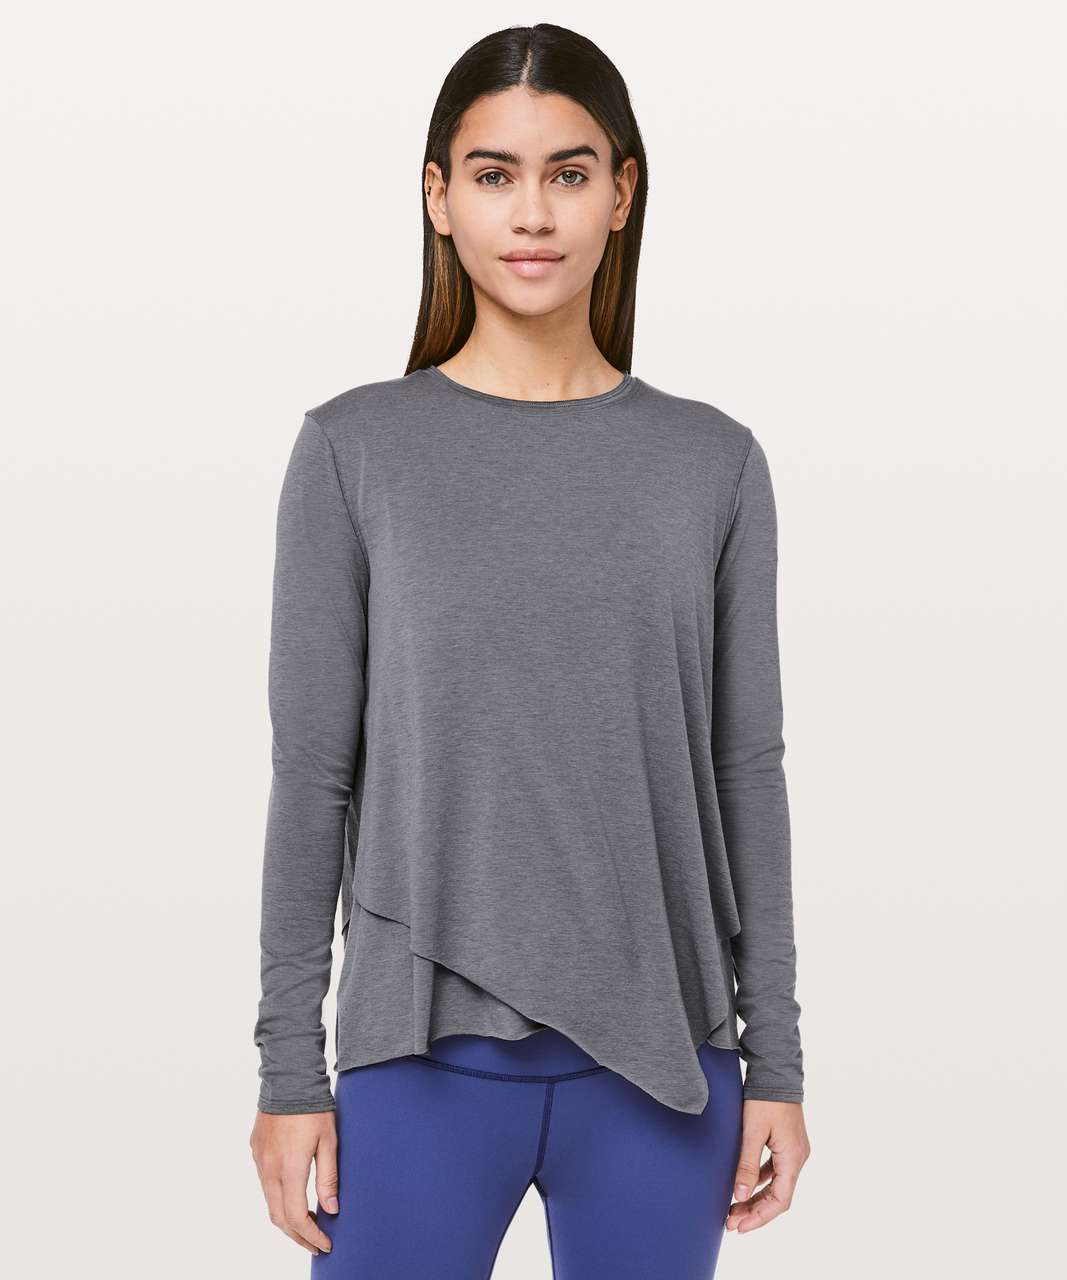 Lululemon Sweetest Day Long Sleeve *Tencel - Heathered Titanium